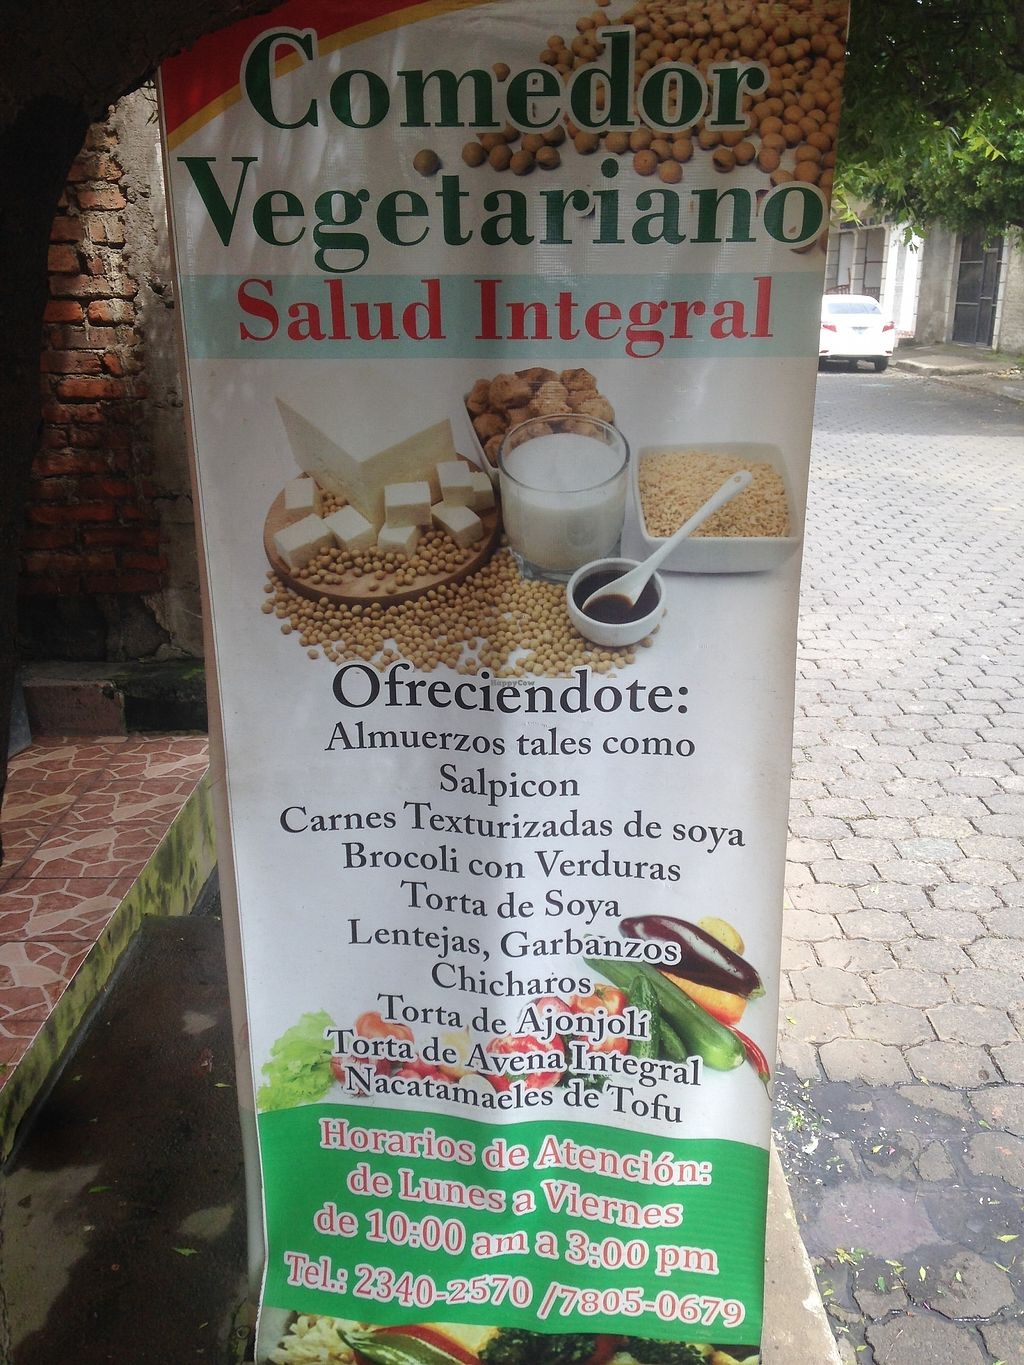 """Photo of Comedor Vegetariano Salud Integral  by <a href=""""/members/profile/Stubler"""">Stubler</a> <br/>Restaurant street listing <br/> October 15, 2017  - <a href='/contact/abuse/image/102923/315515'>Report</a>"""